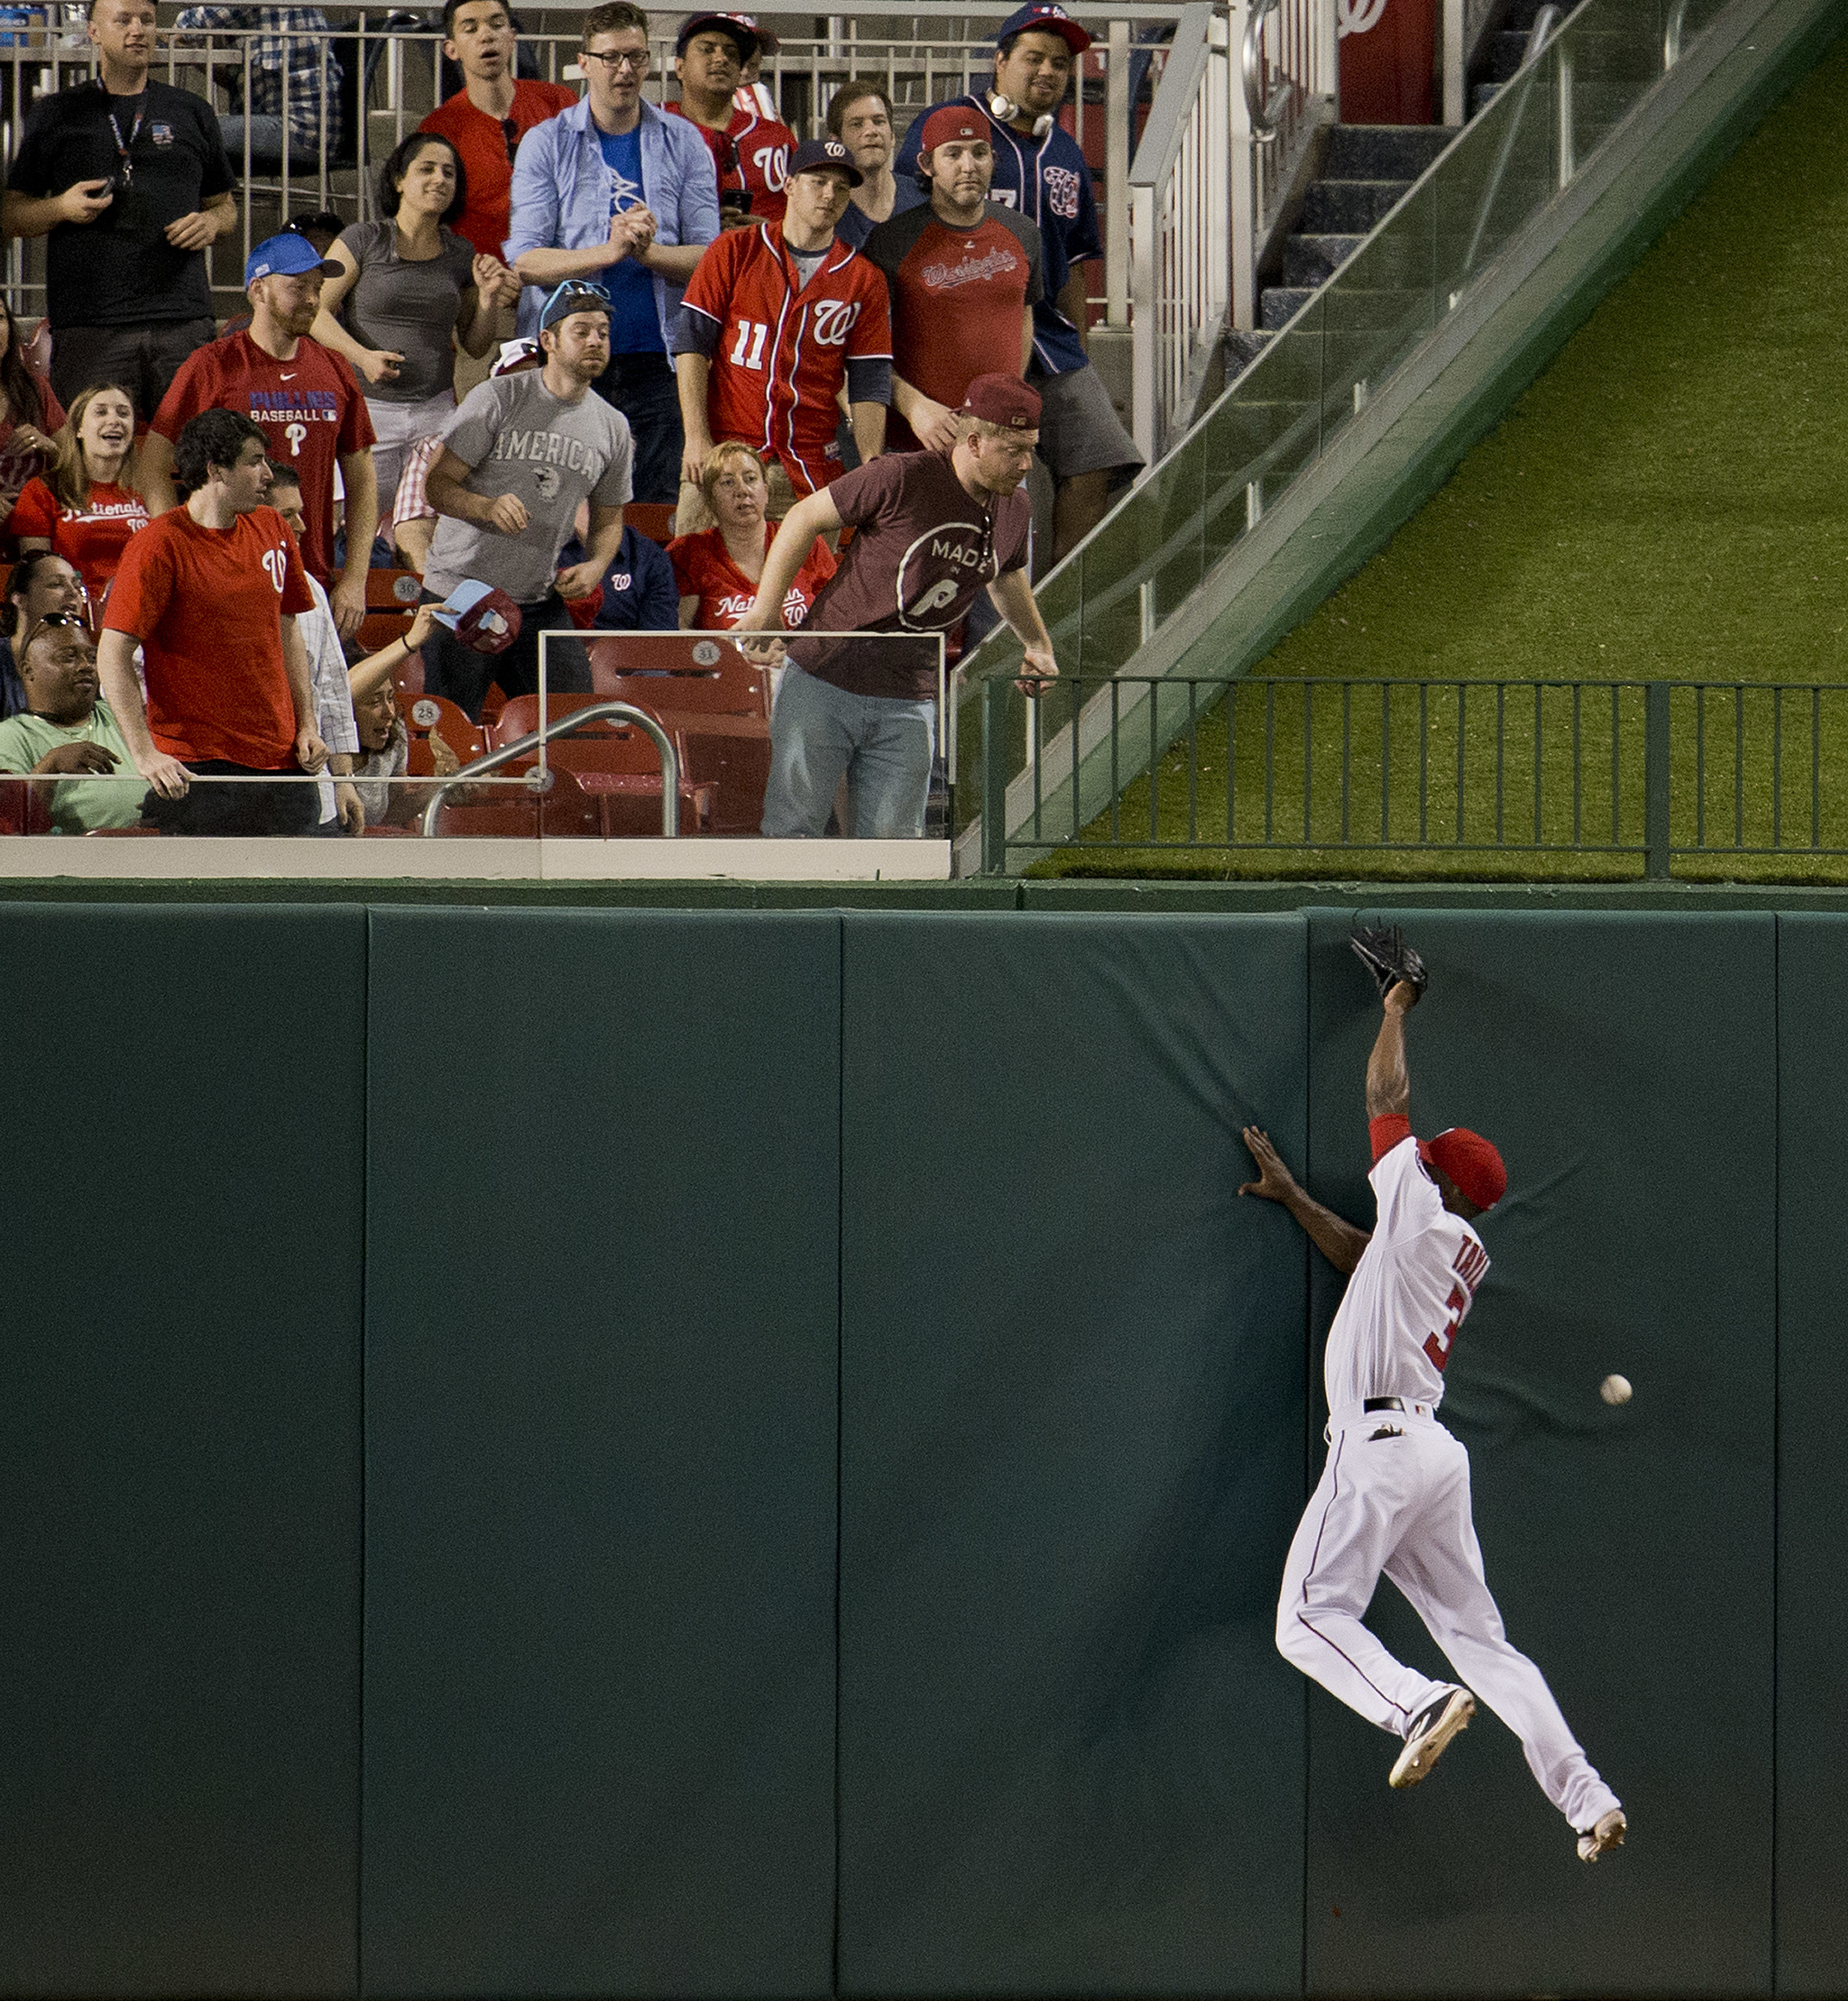 Fans in centerfield watch as Washington Nationals Michael Taylor tries to catch a ball hit by Philadelphia Phillies Maikel Franco for a double scoring Phillies Andres Blanco for the go-ahead run in the seventh inning of a baseball game, Tuesday, April 26,